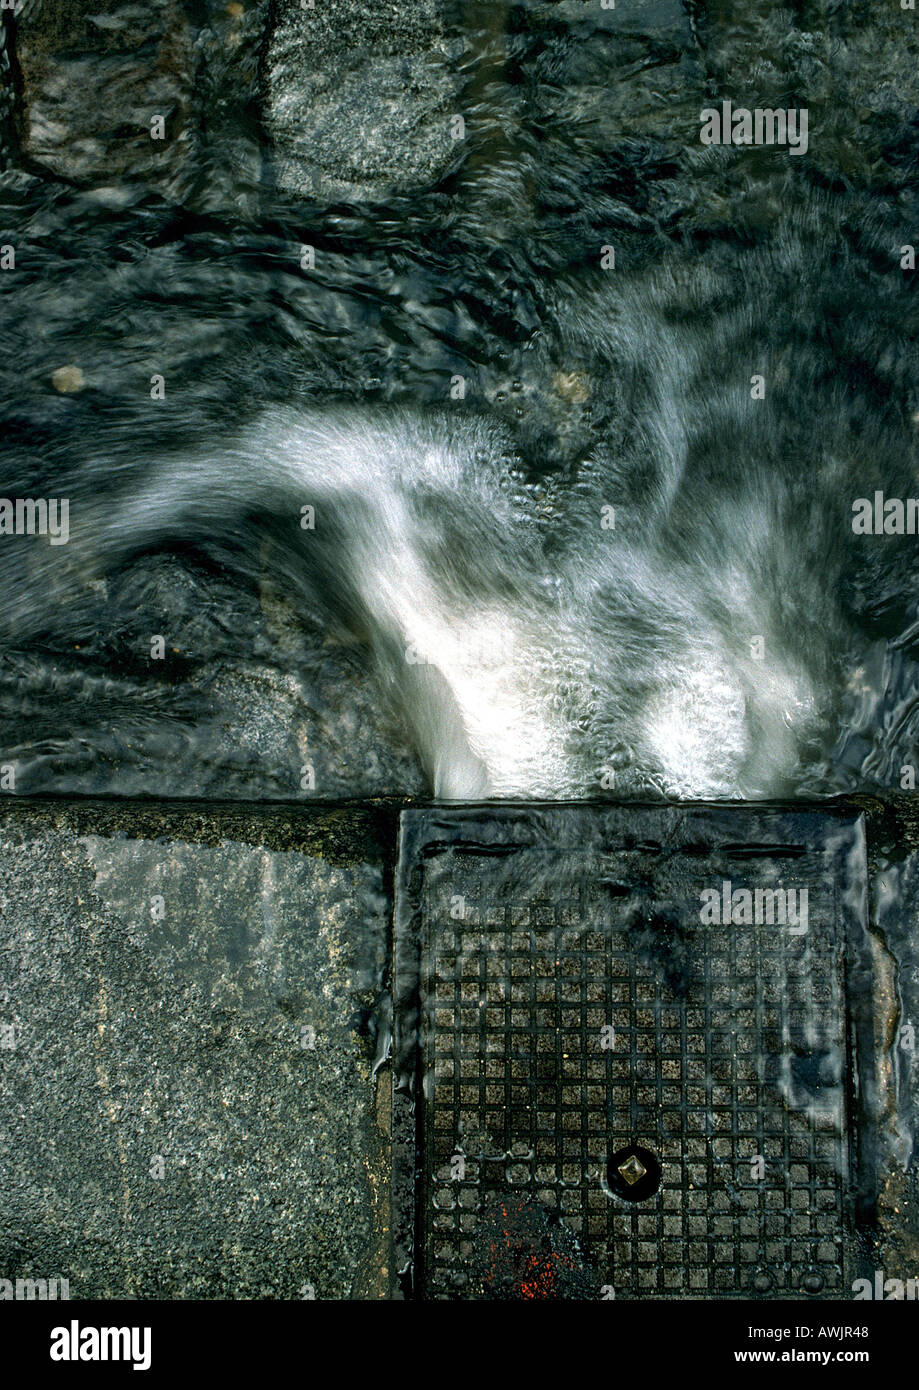 Water pouring into gutter, high angle view, close-up - Stock Image